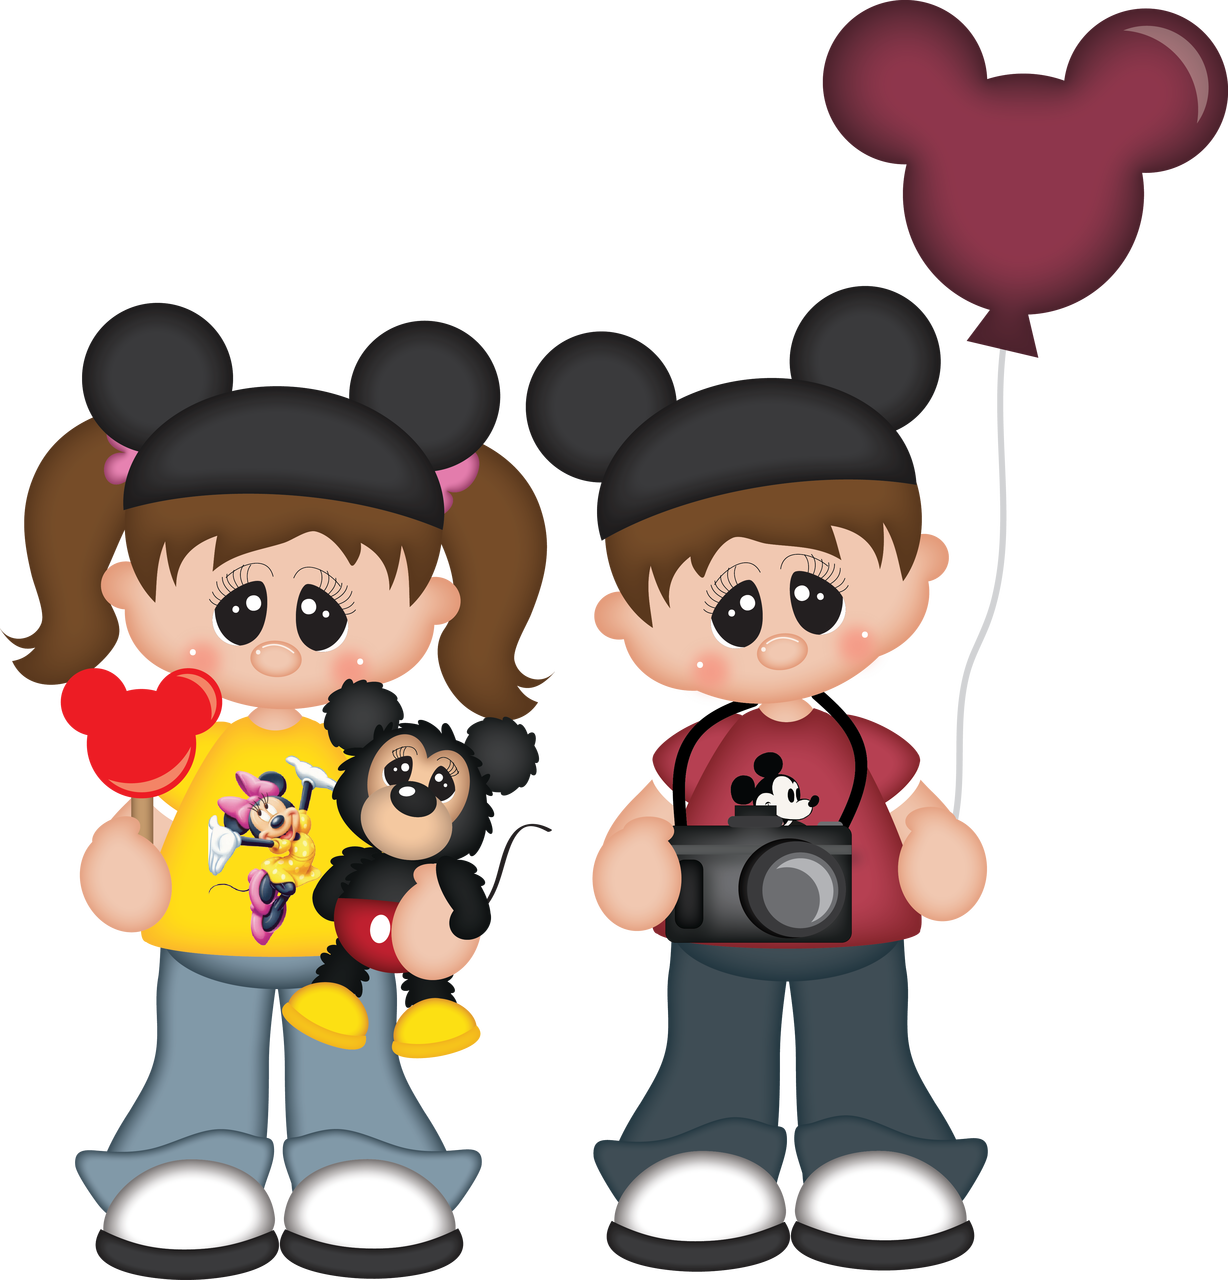 clipart royalty free library Memories clipart person. Ppbn designs magical kids.